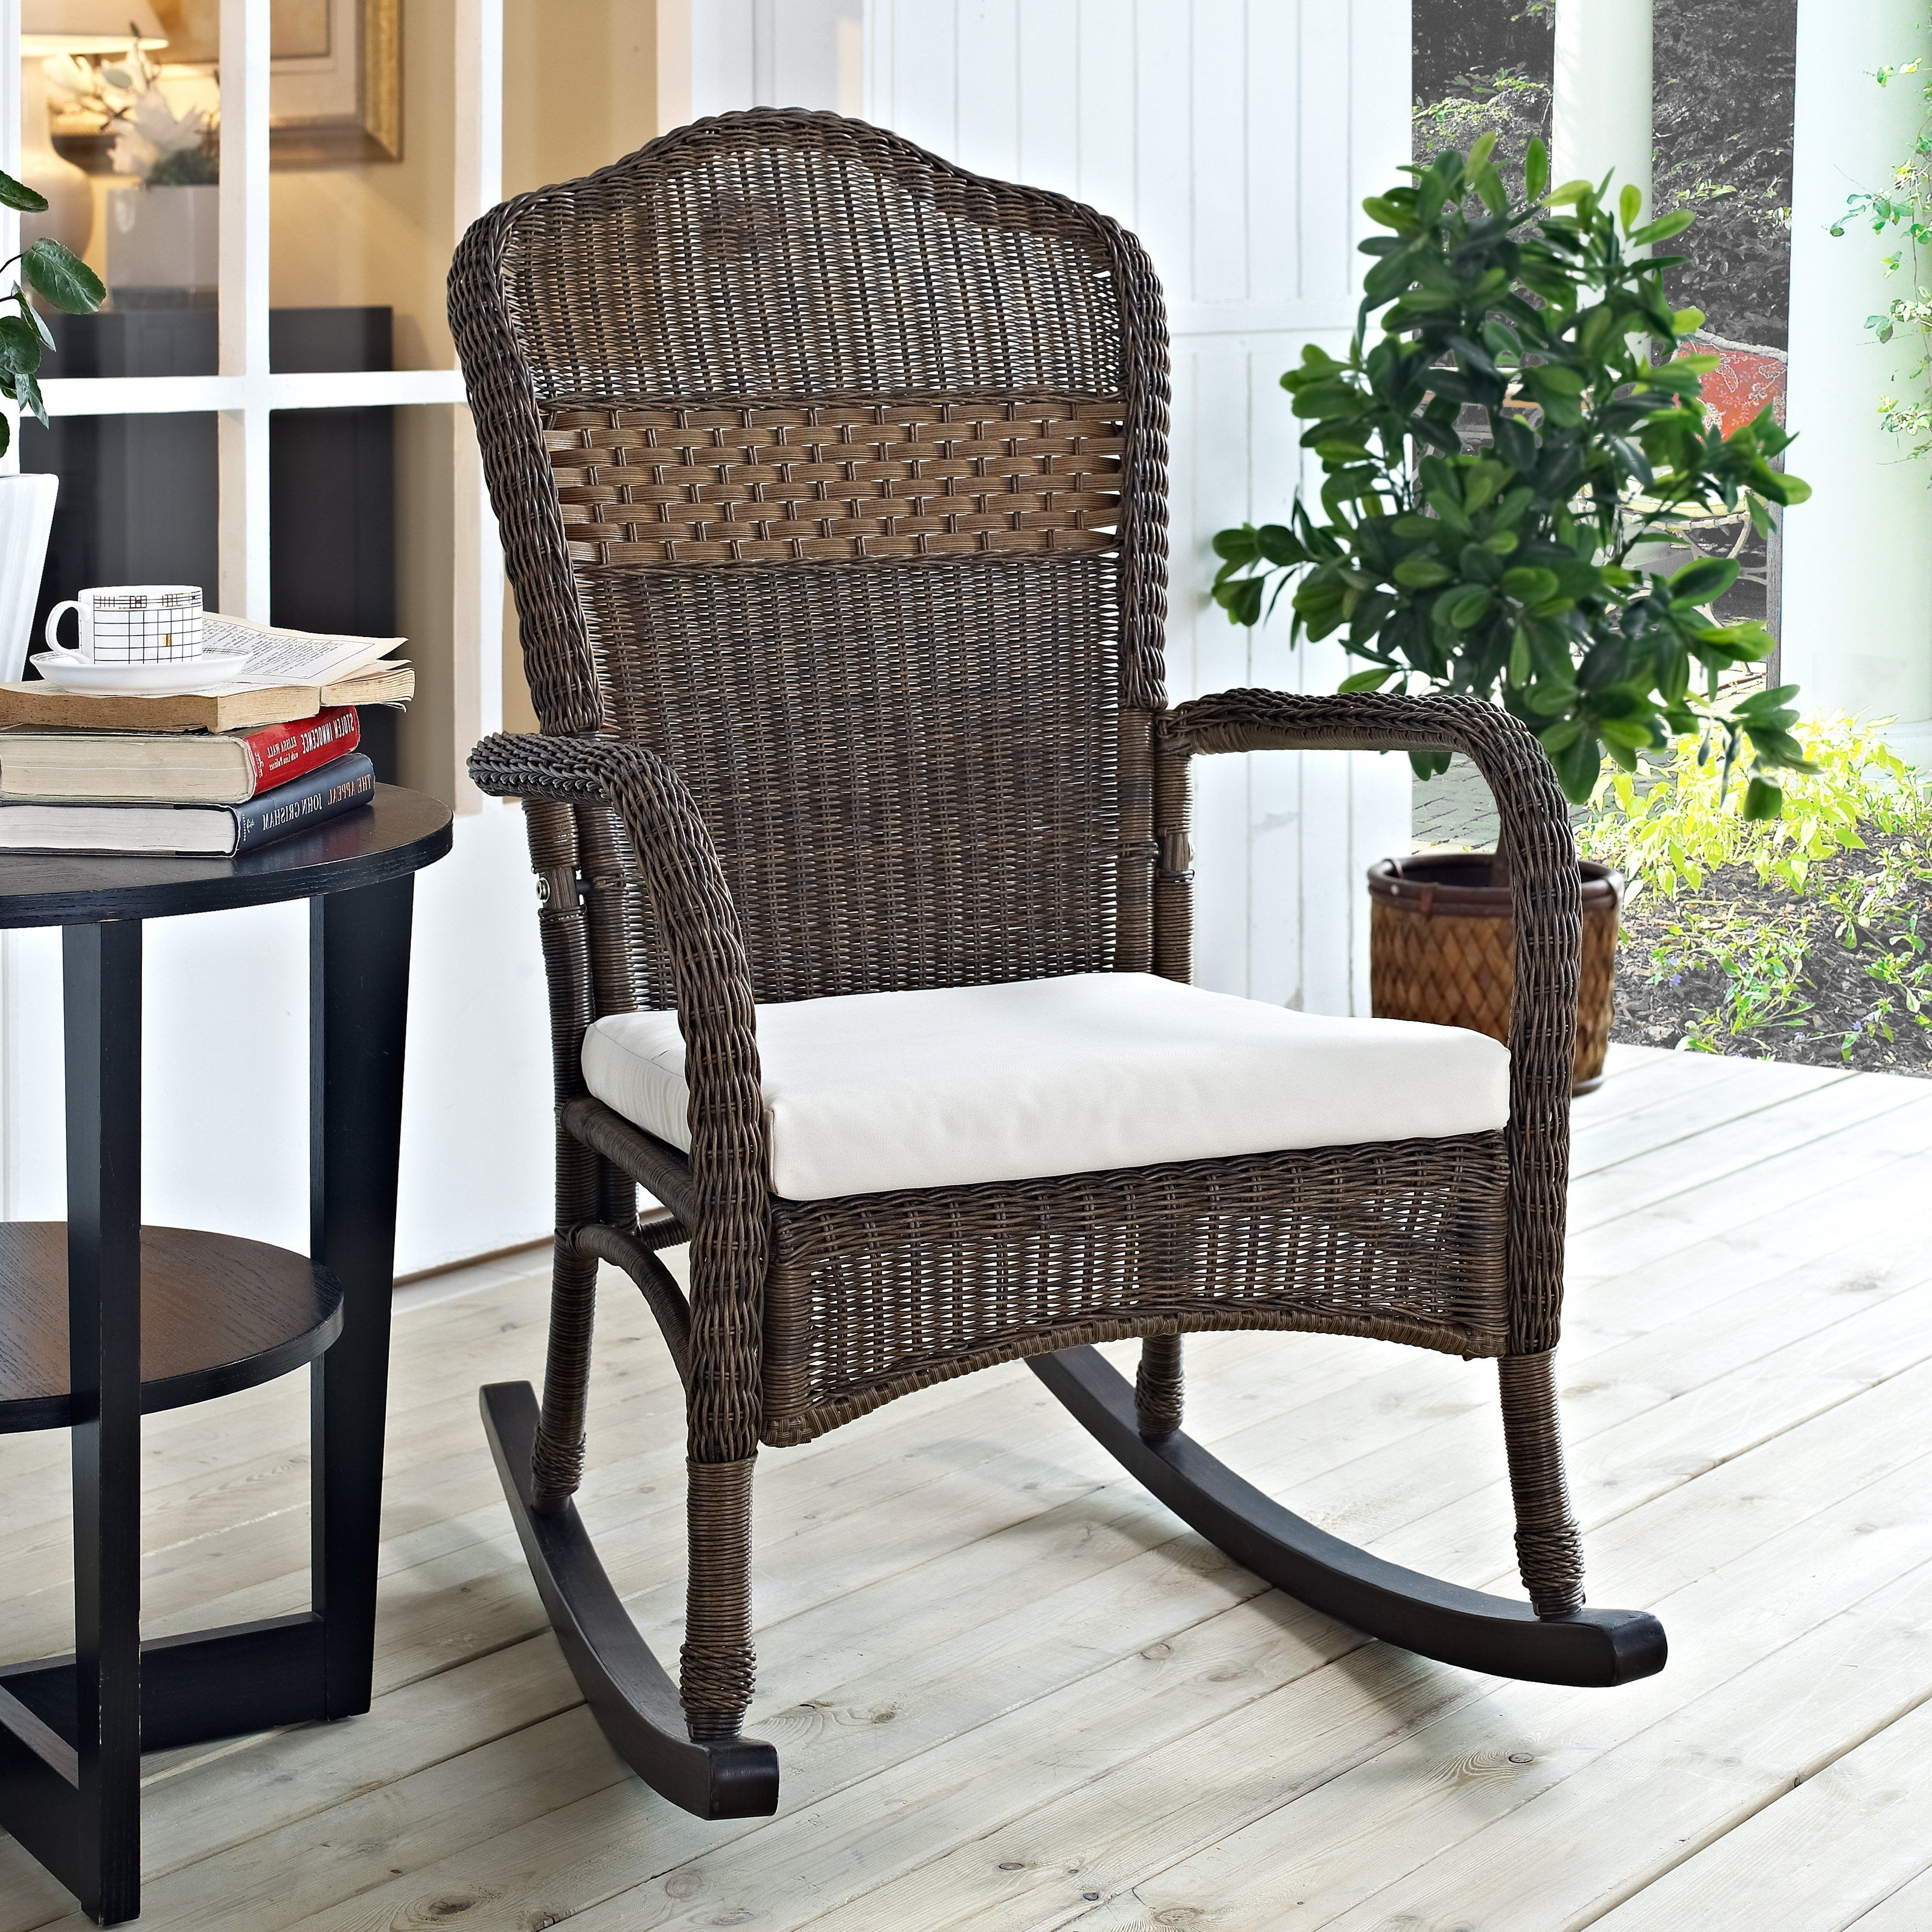 2018 Outdoor Coral Coast Mocha Resin Wicker Rocking Chair With Beige Throughout Resin Patio Rocking Chairs (View 1 of 20)